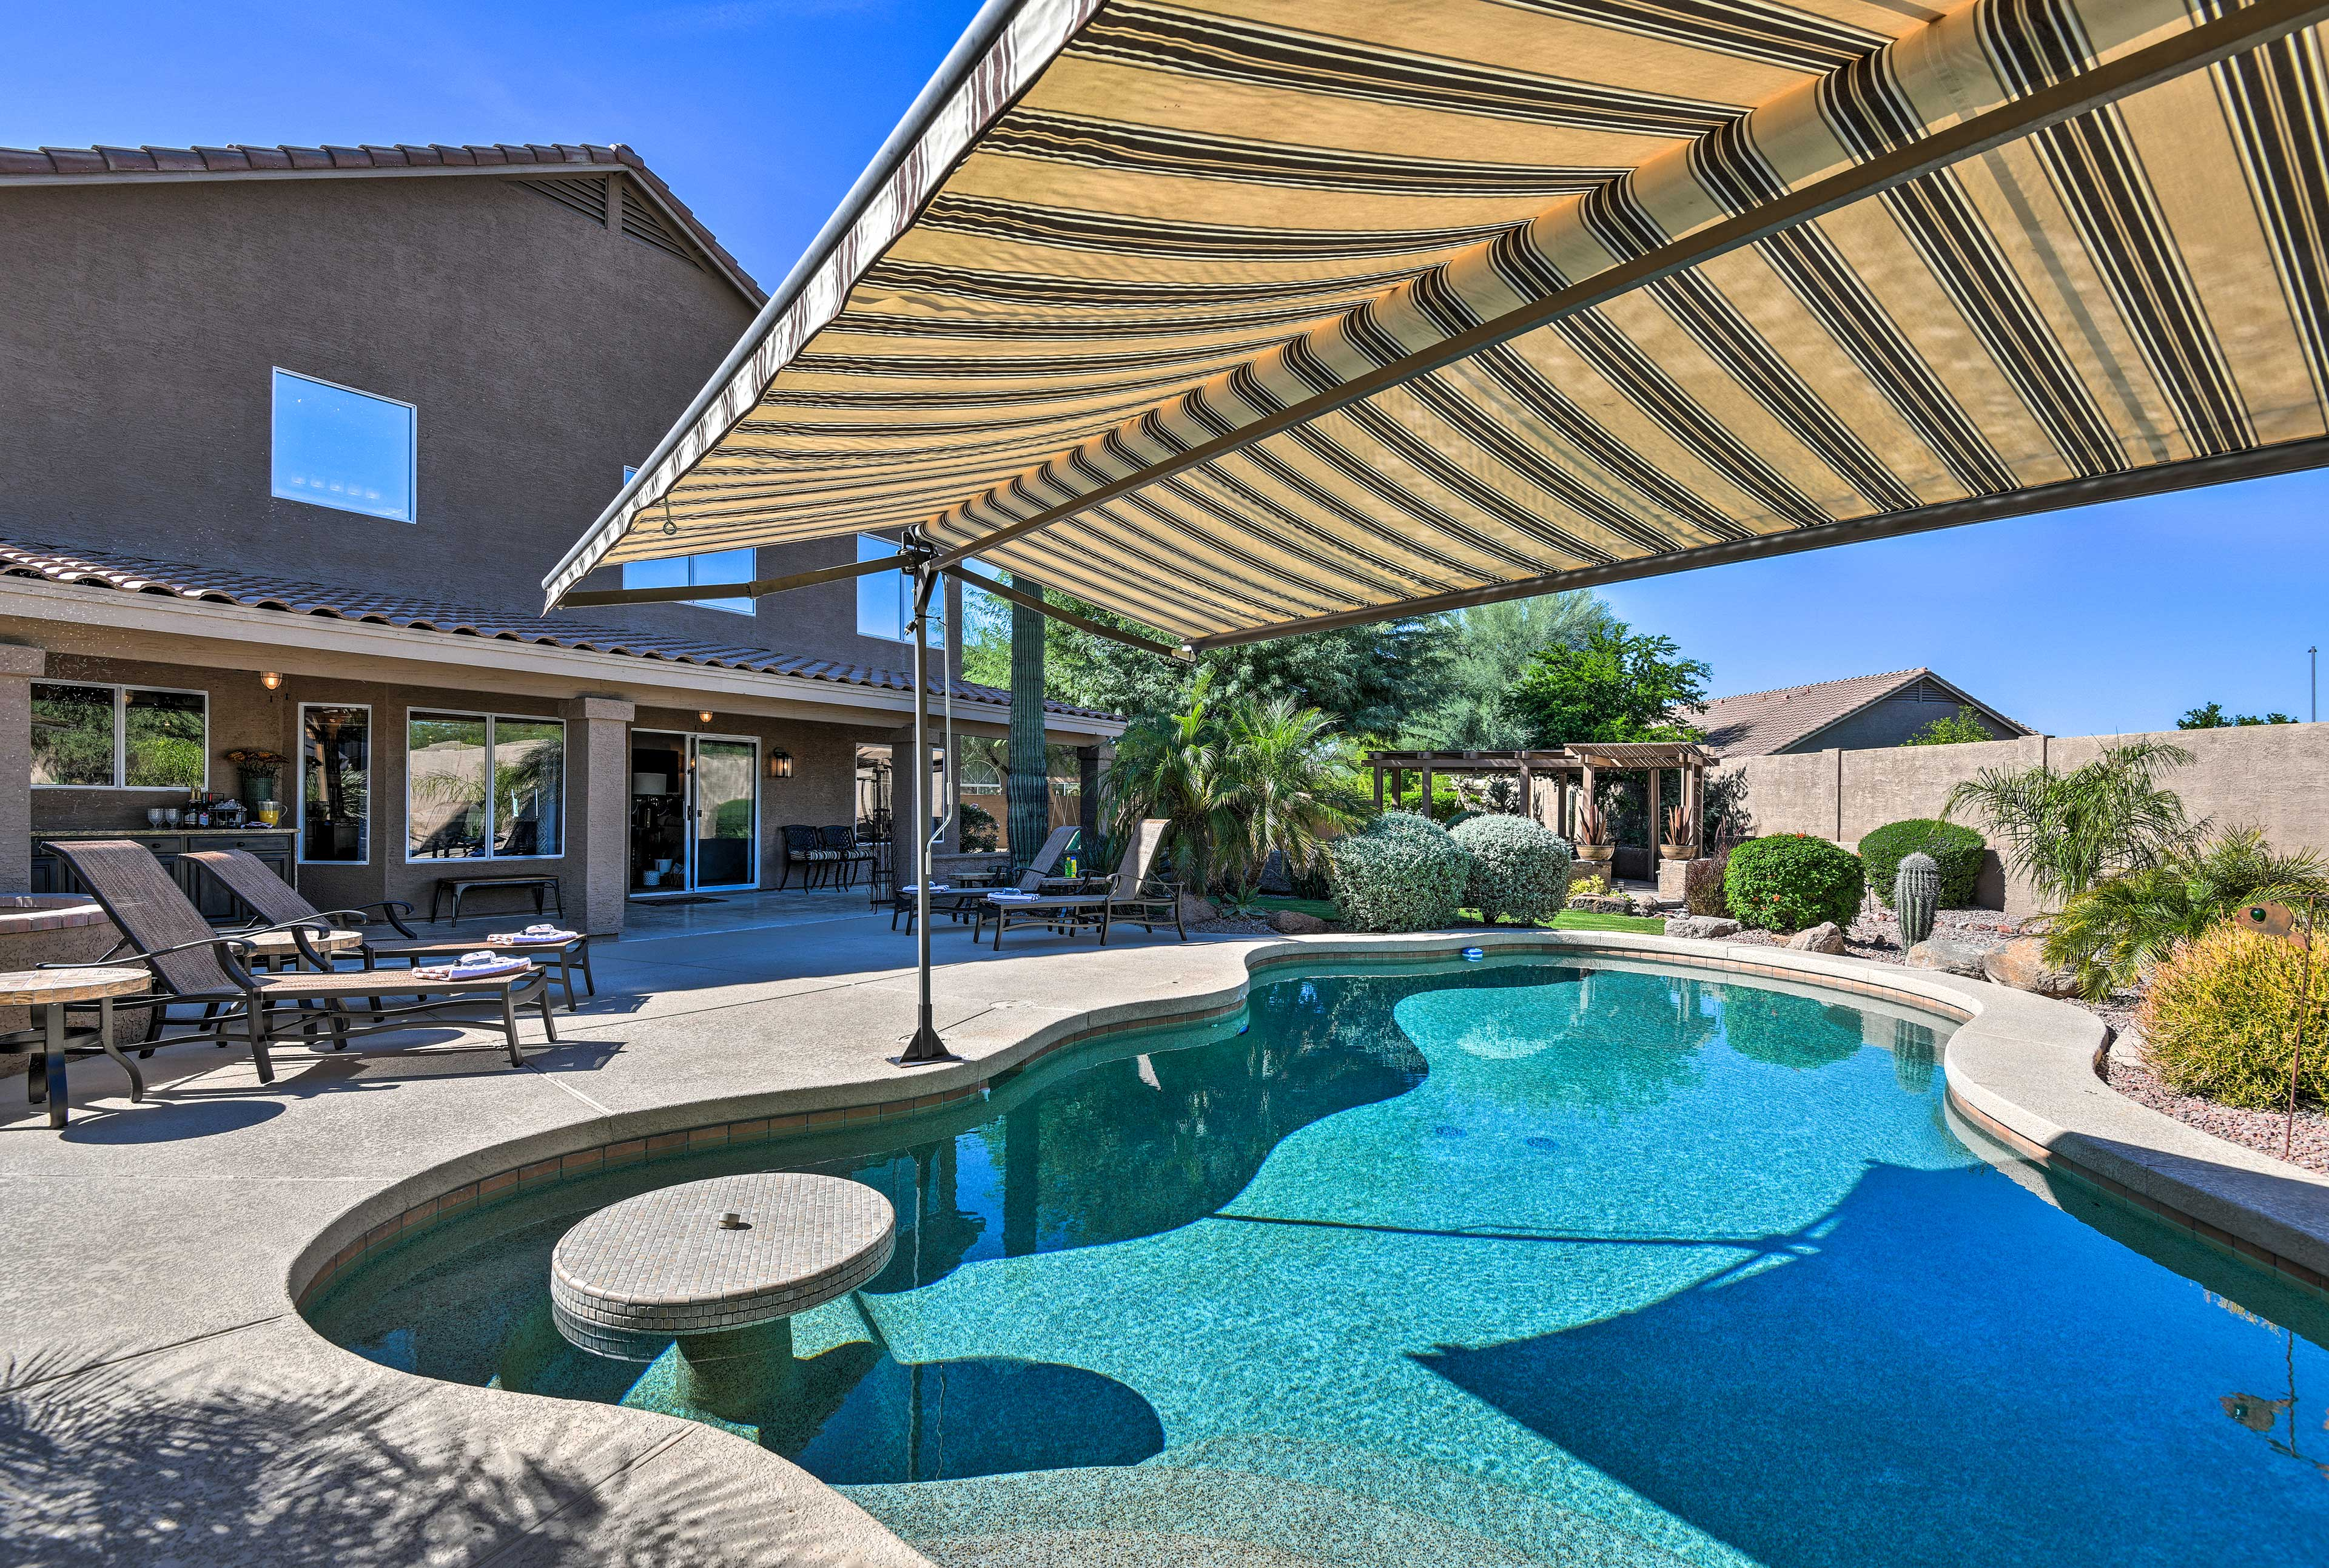 This 4-bedroom, 3-bathroom abode can accommodate up to 14 travelers!